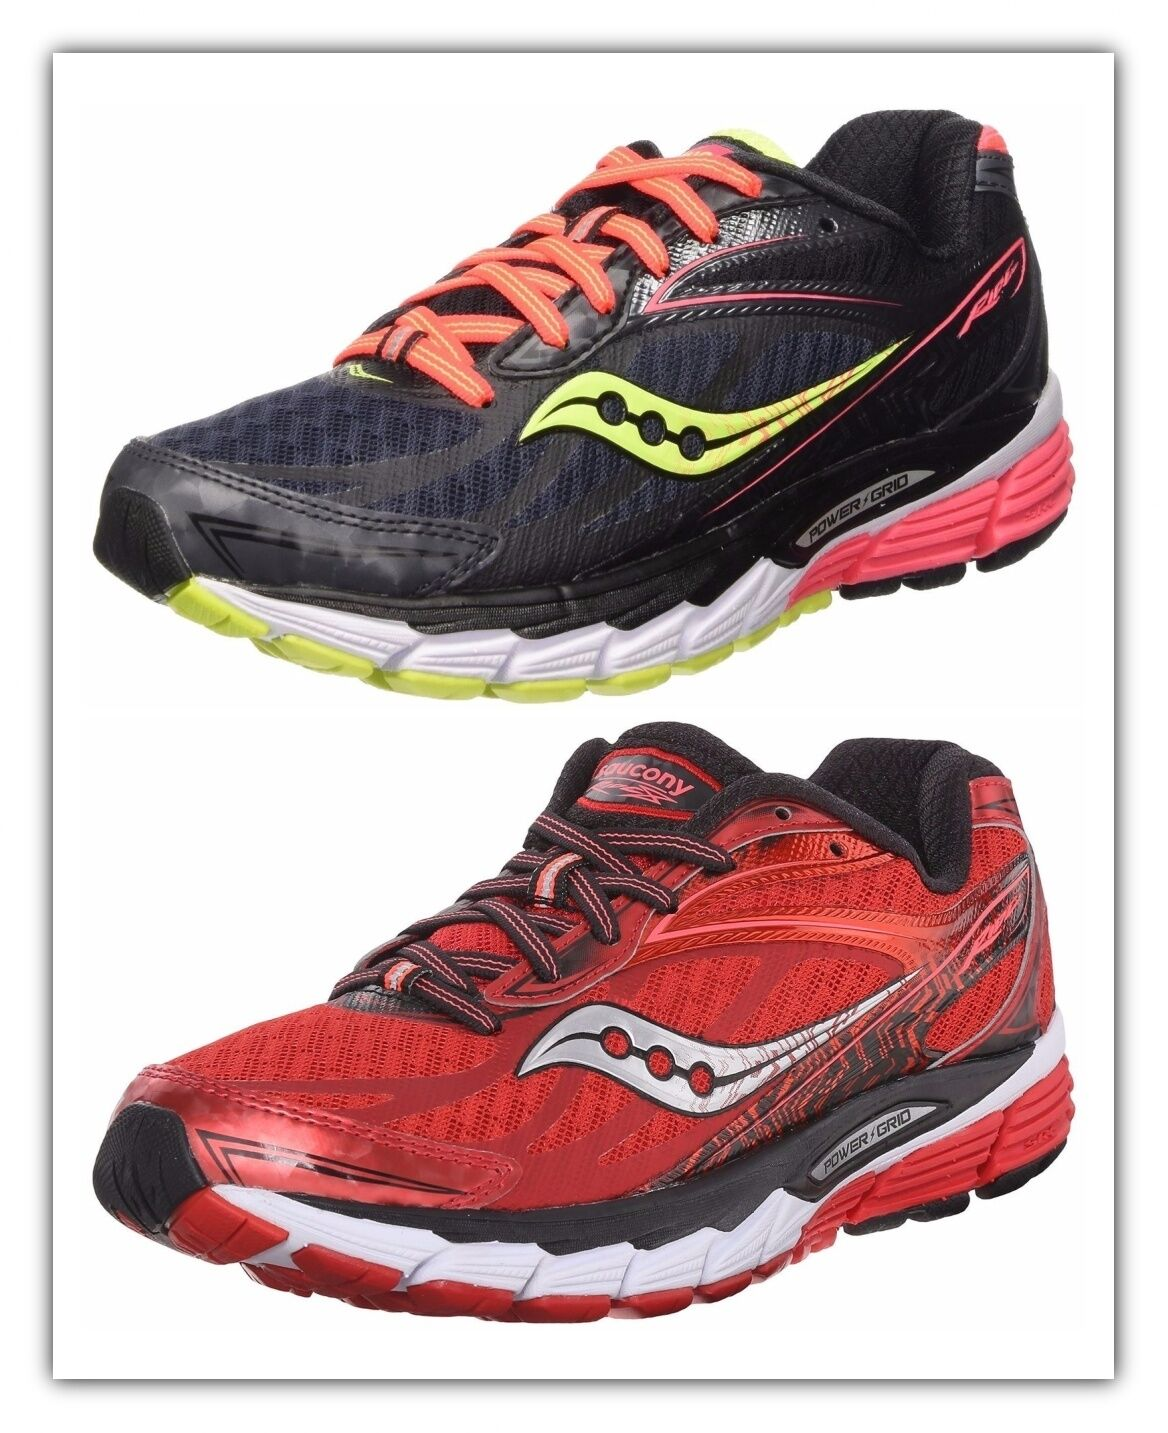 Saucony Ride 8 femmes  Running  Chaussures  Sneakers Neutral Runner  Chaussures  Extra Cushion